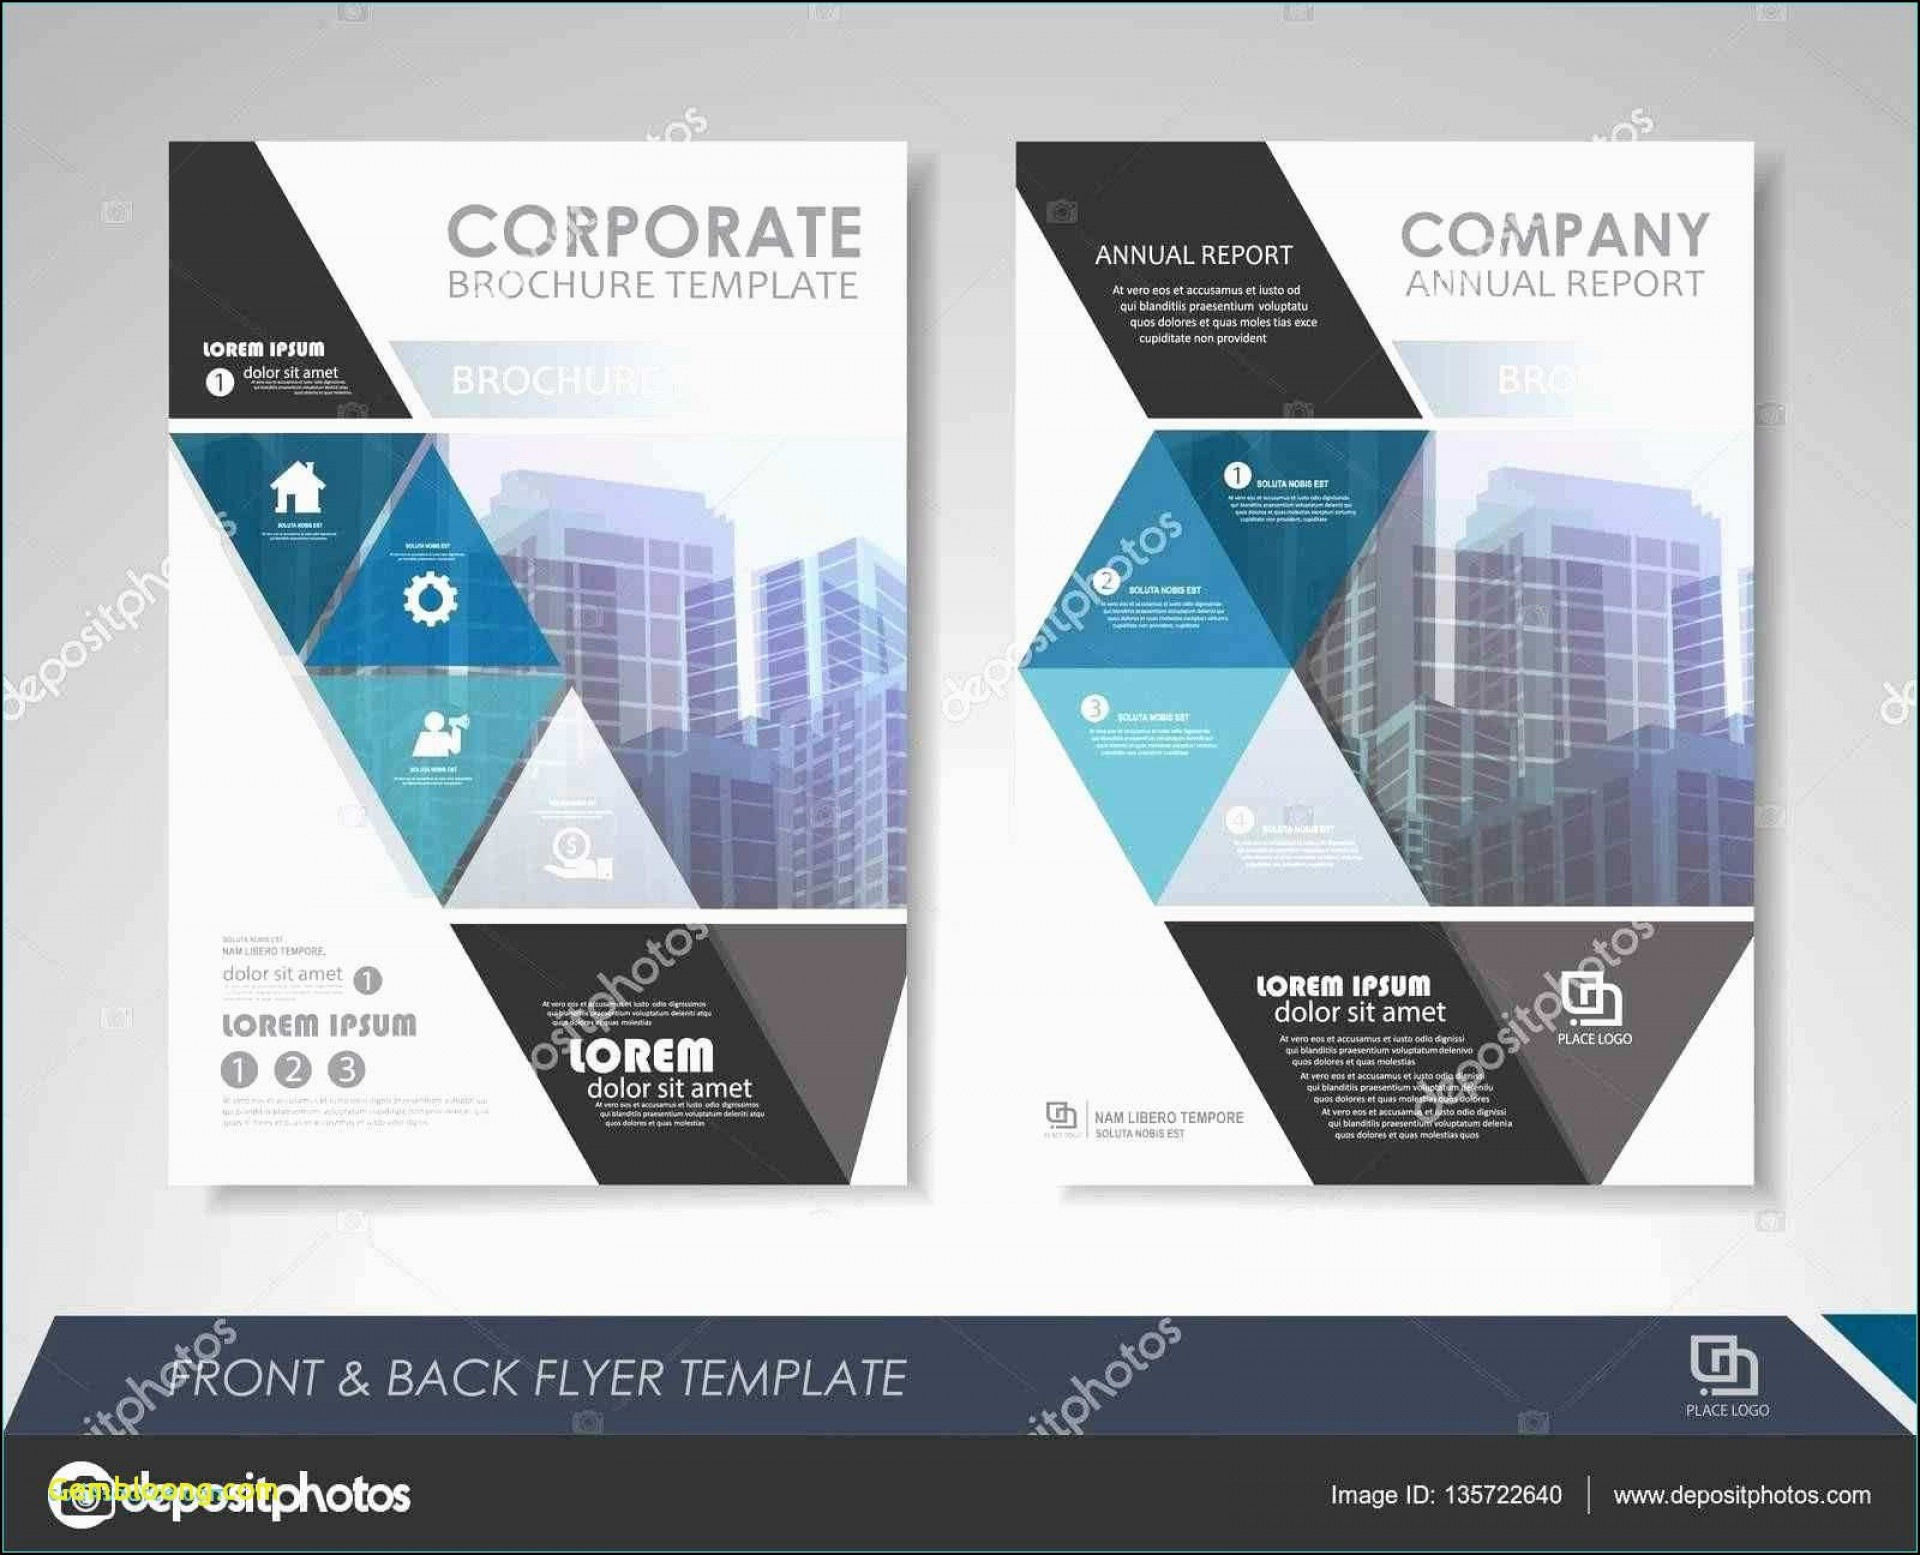 001 Wonderful Free Brochure Template Psd Photo  A4 Download File Front And Back Travel1920